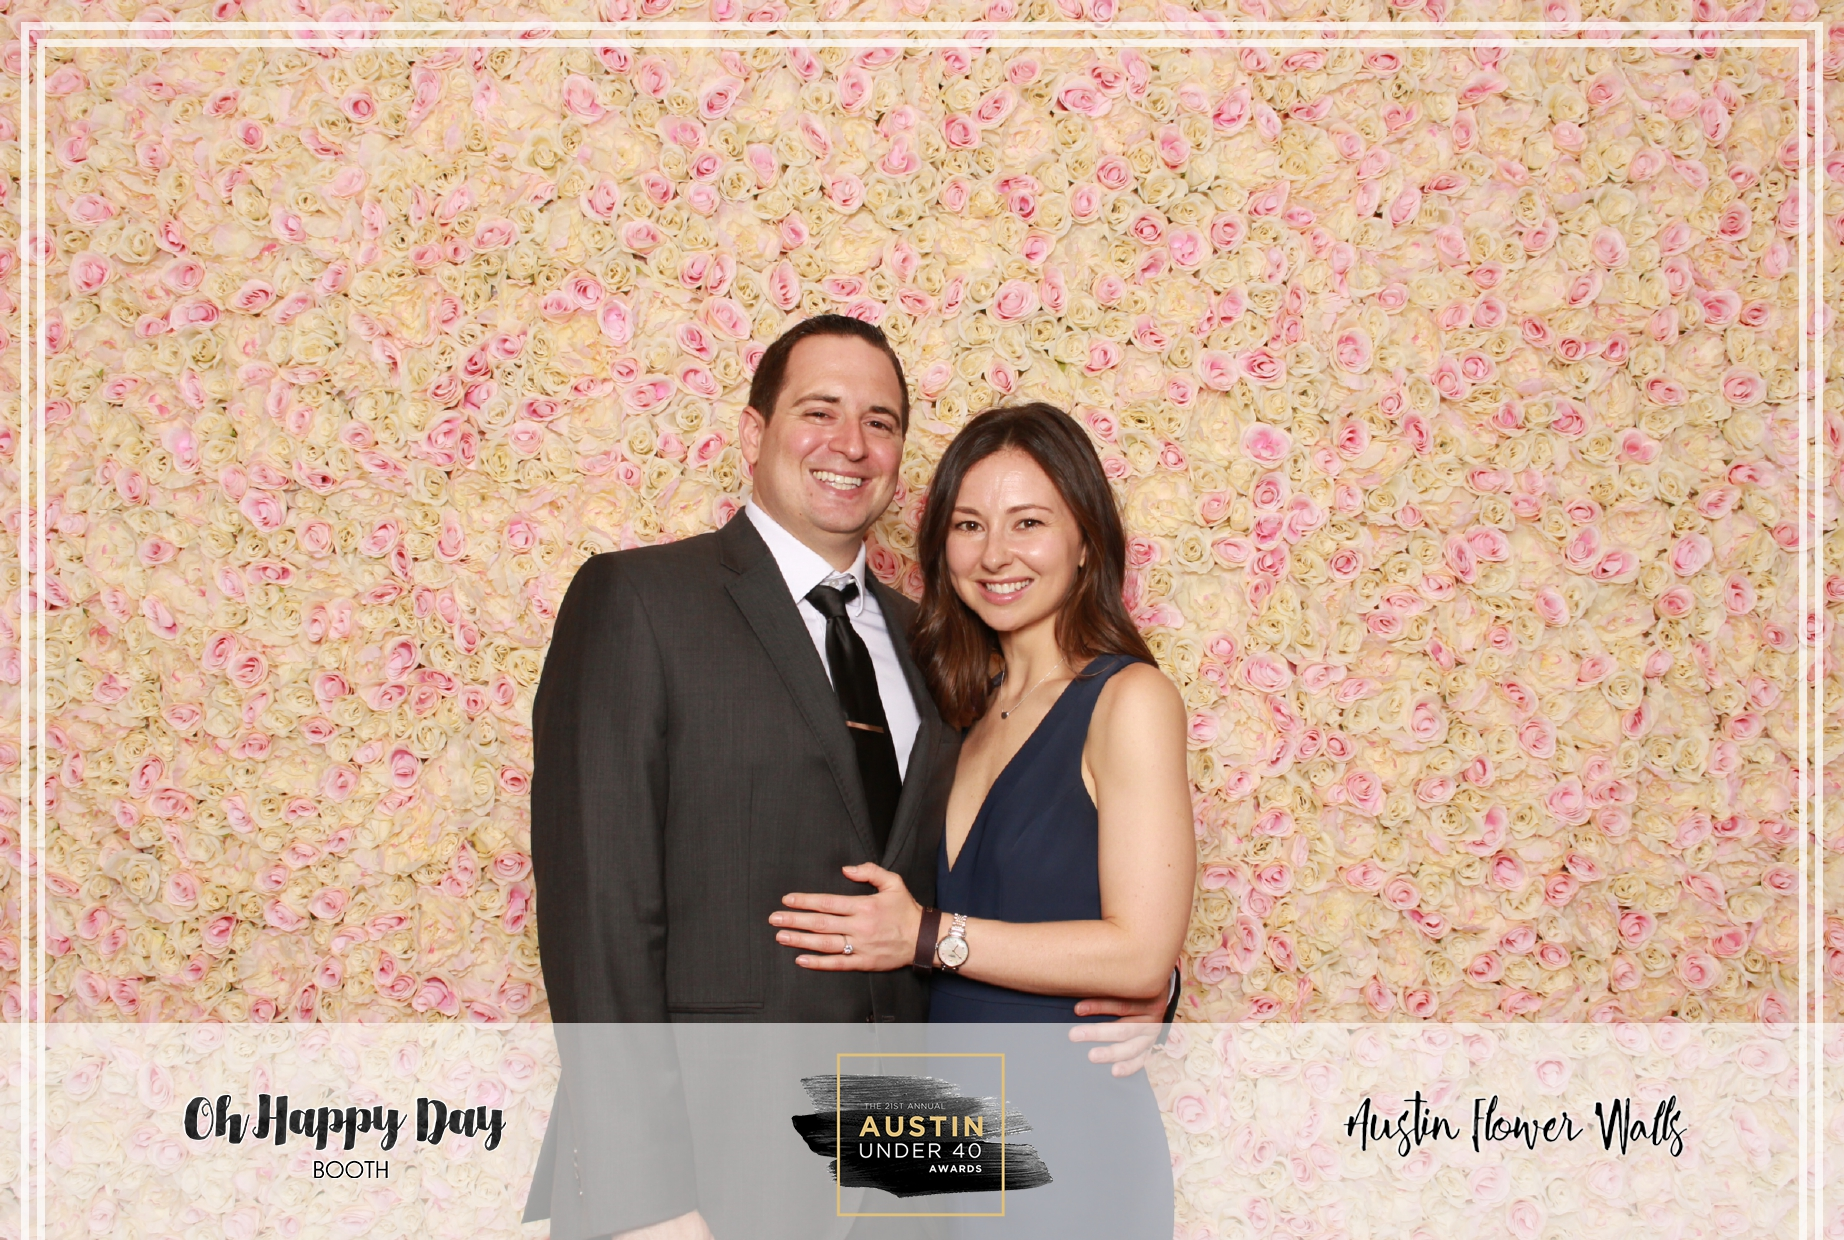 Oh Happy Day Booth - Austin Under 40-149.jpg